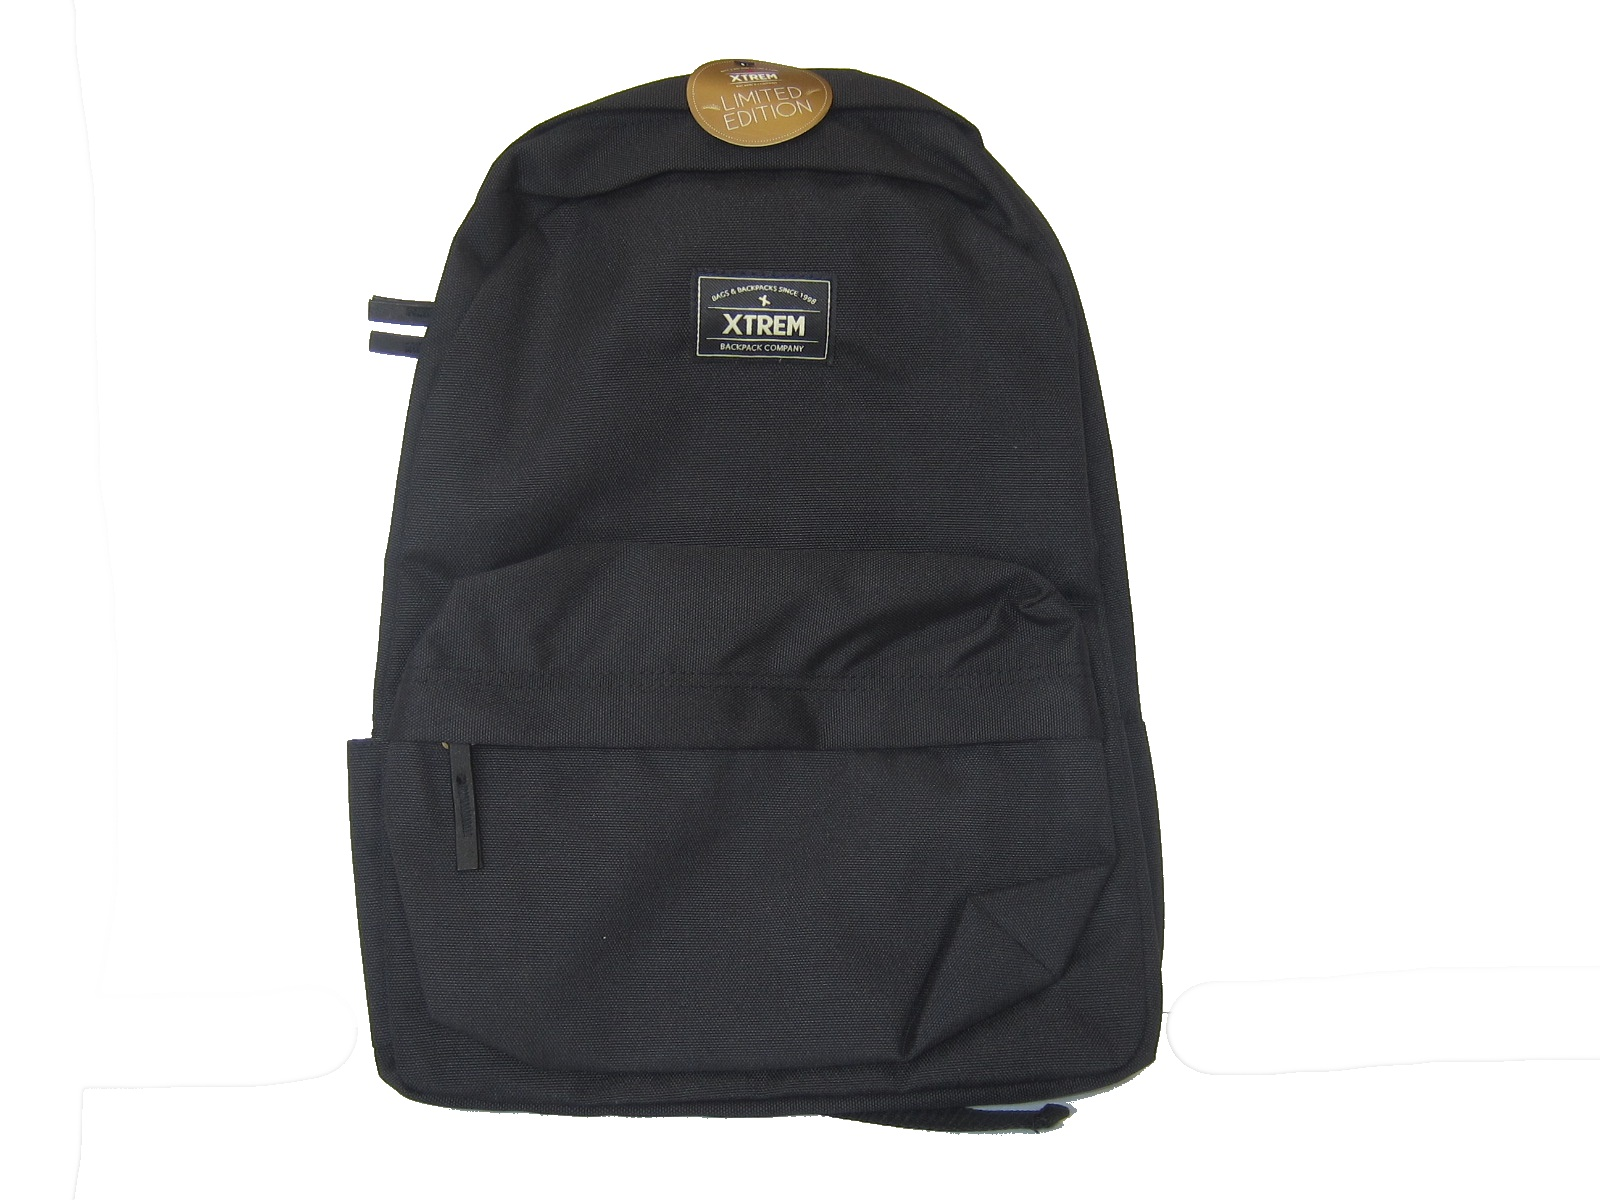 BONDY LTD 710 BACKPACK BLACK HOODIE 87572-6146